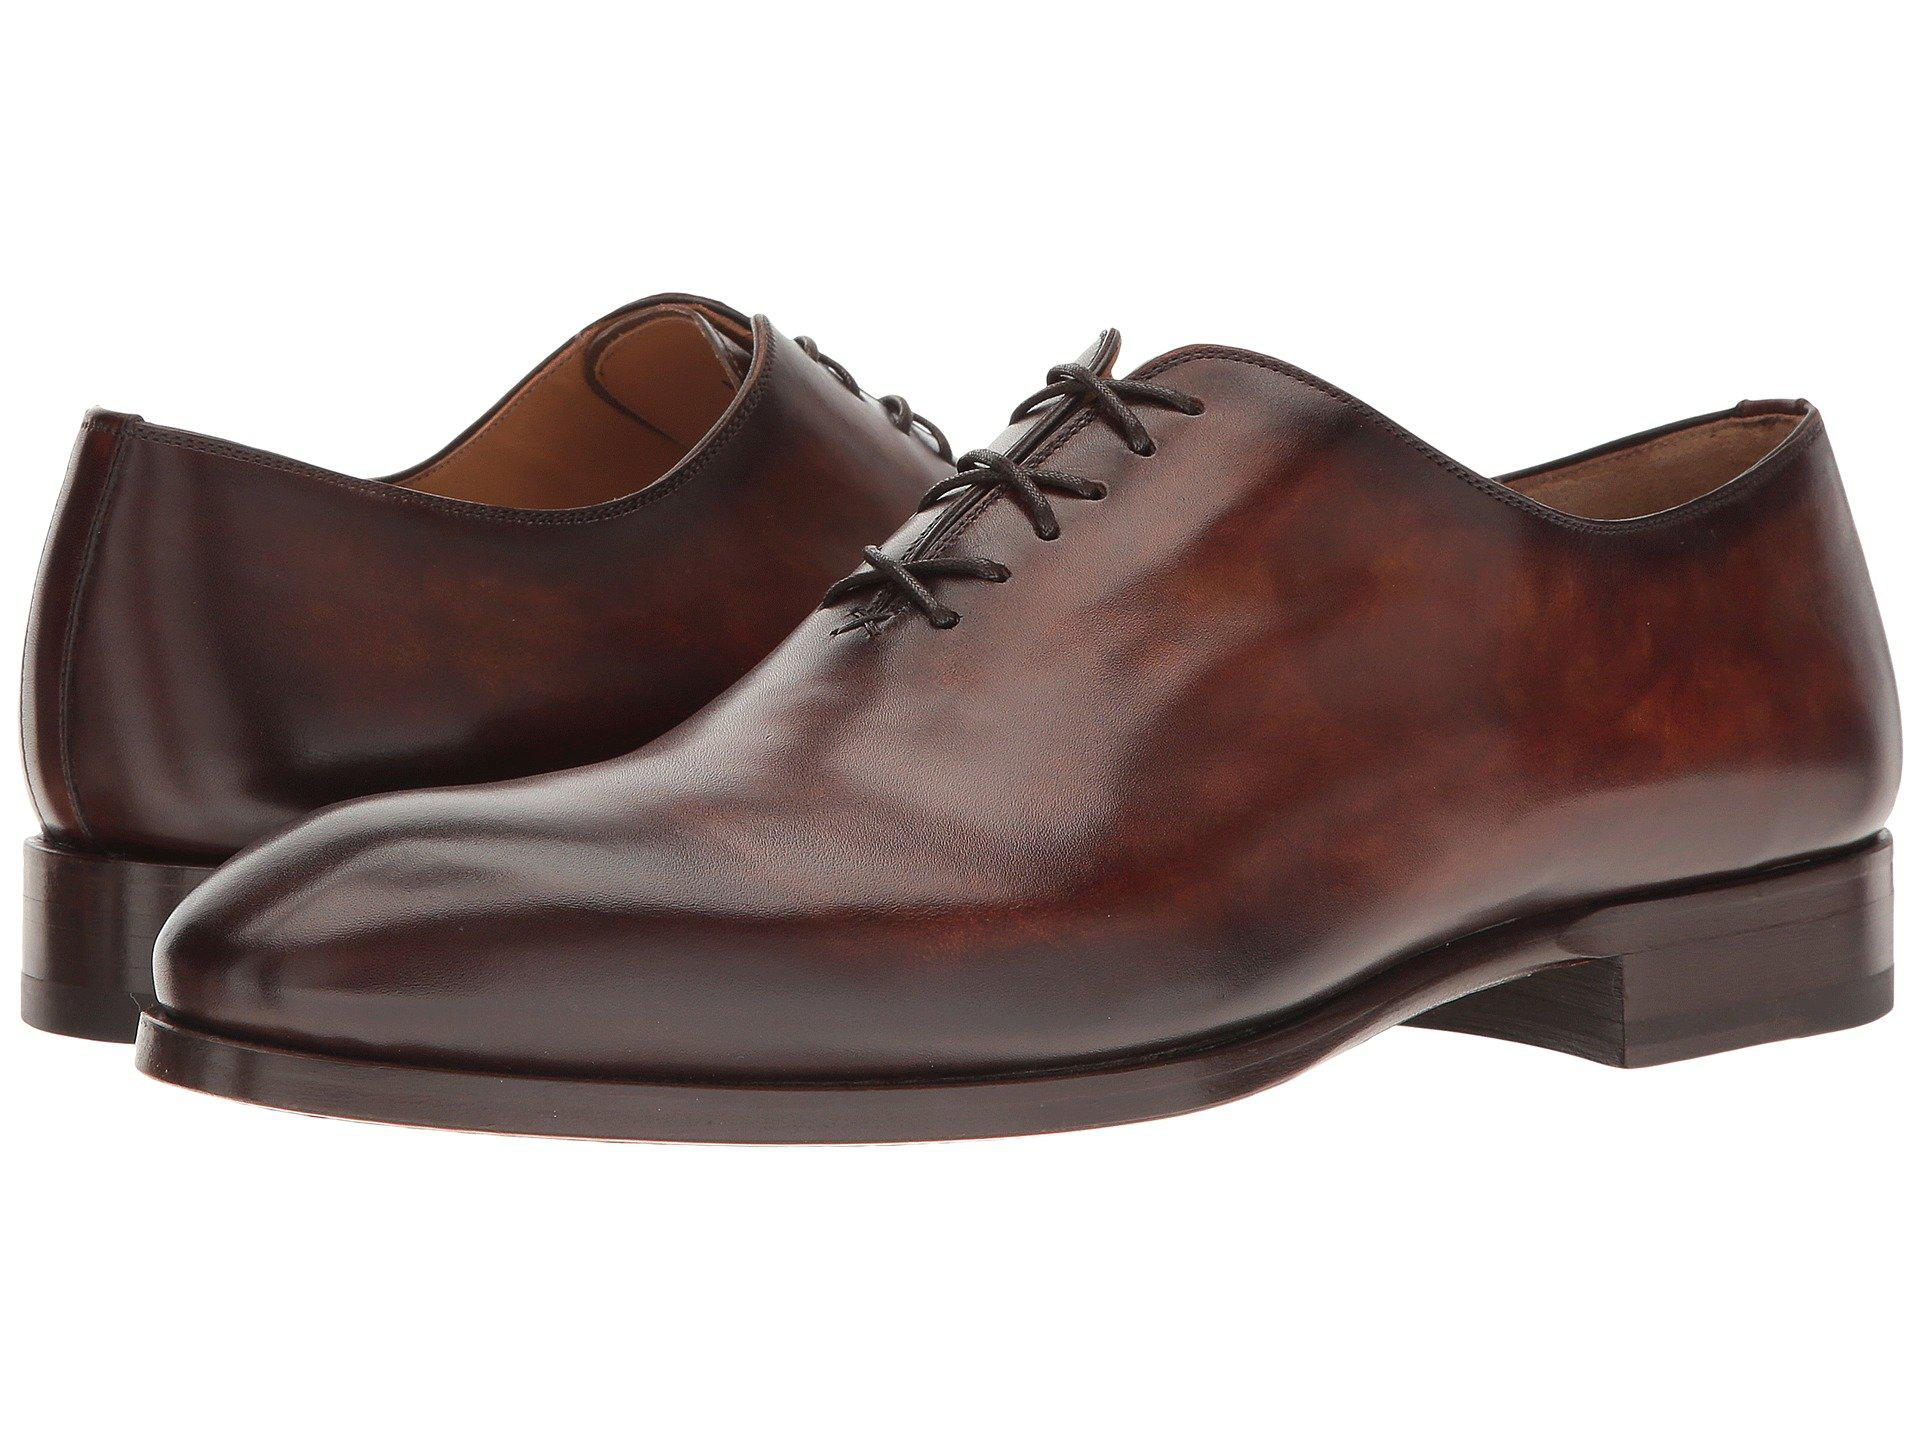 2b40c42149f Lyst - Magnanni Shoes Montay (tabacco) Men s Shoes in Brown for Men